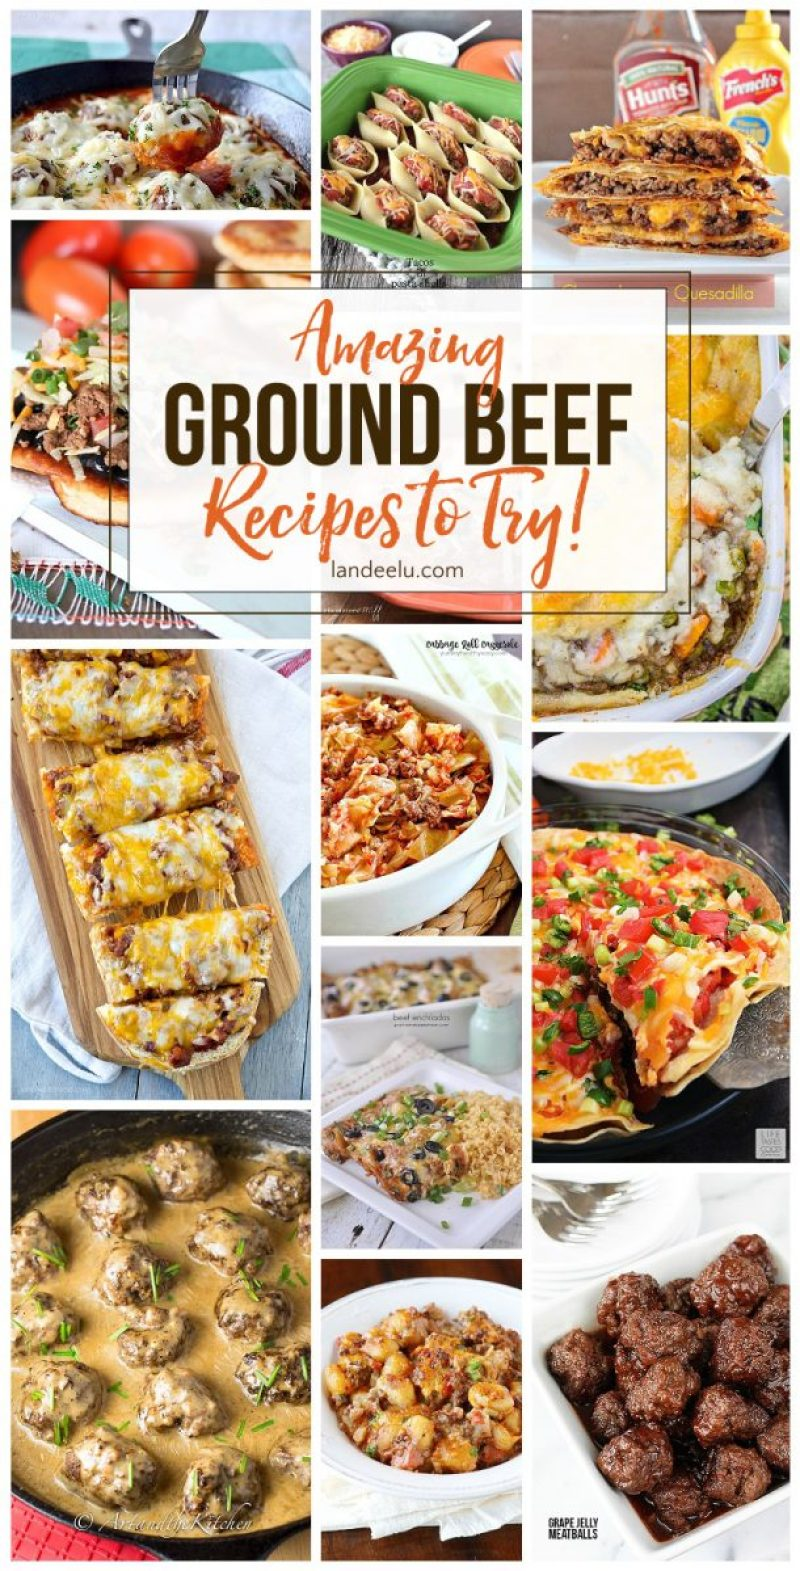 Pull some ground beef out of the freezer and try one of these awesome ground beef recipes tonight! Over 25 delicious meals to make!